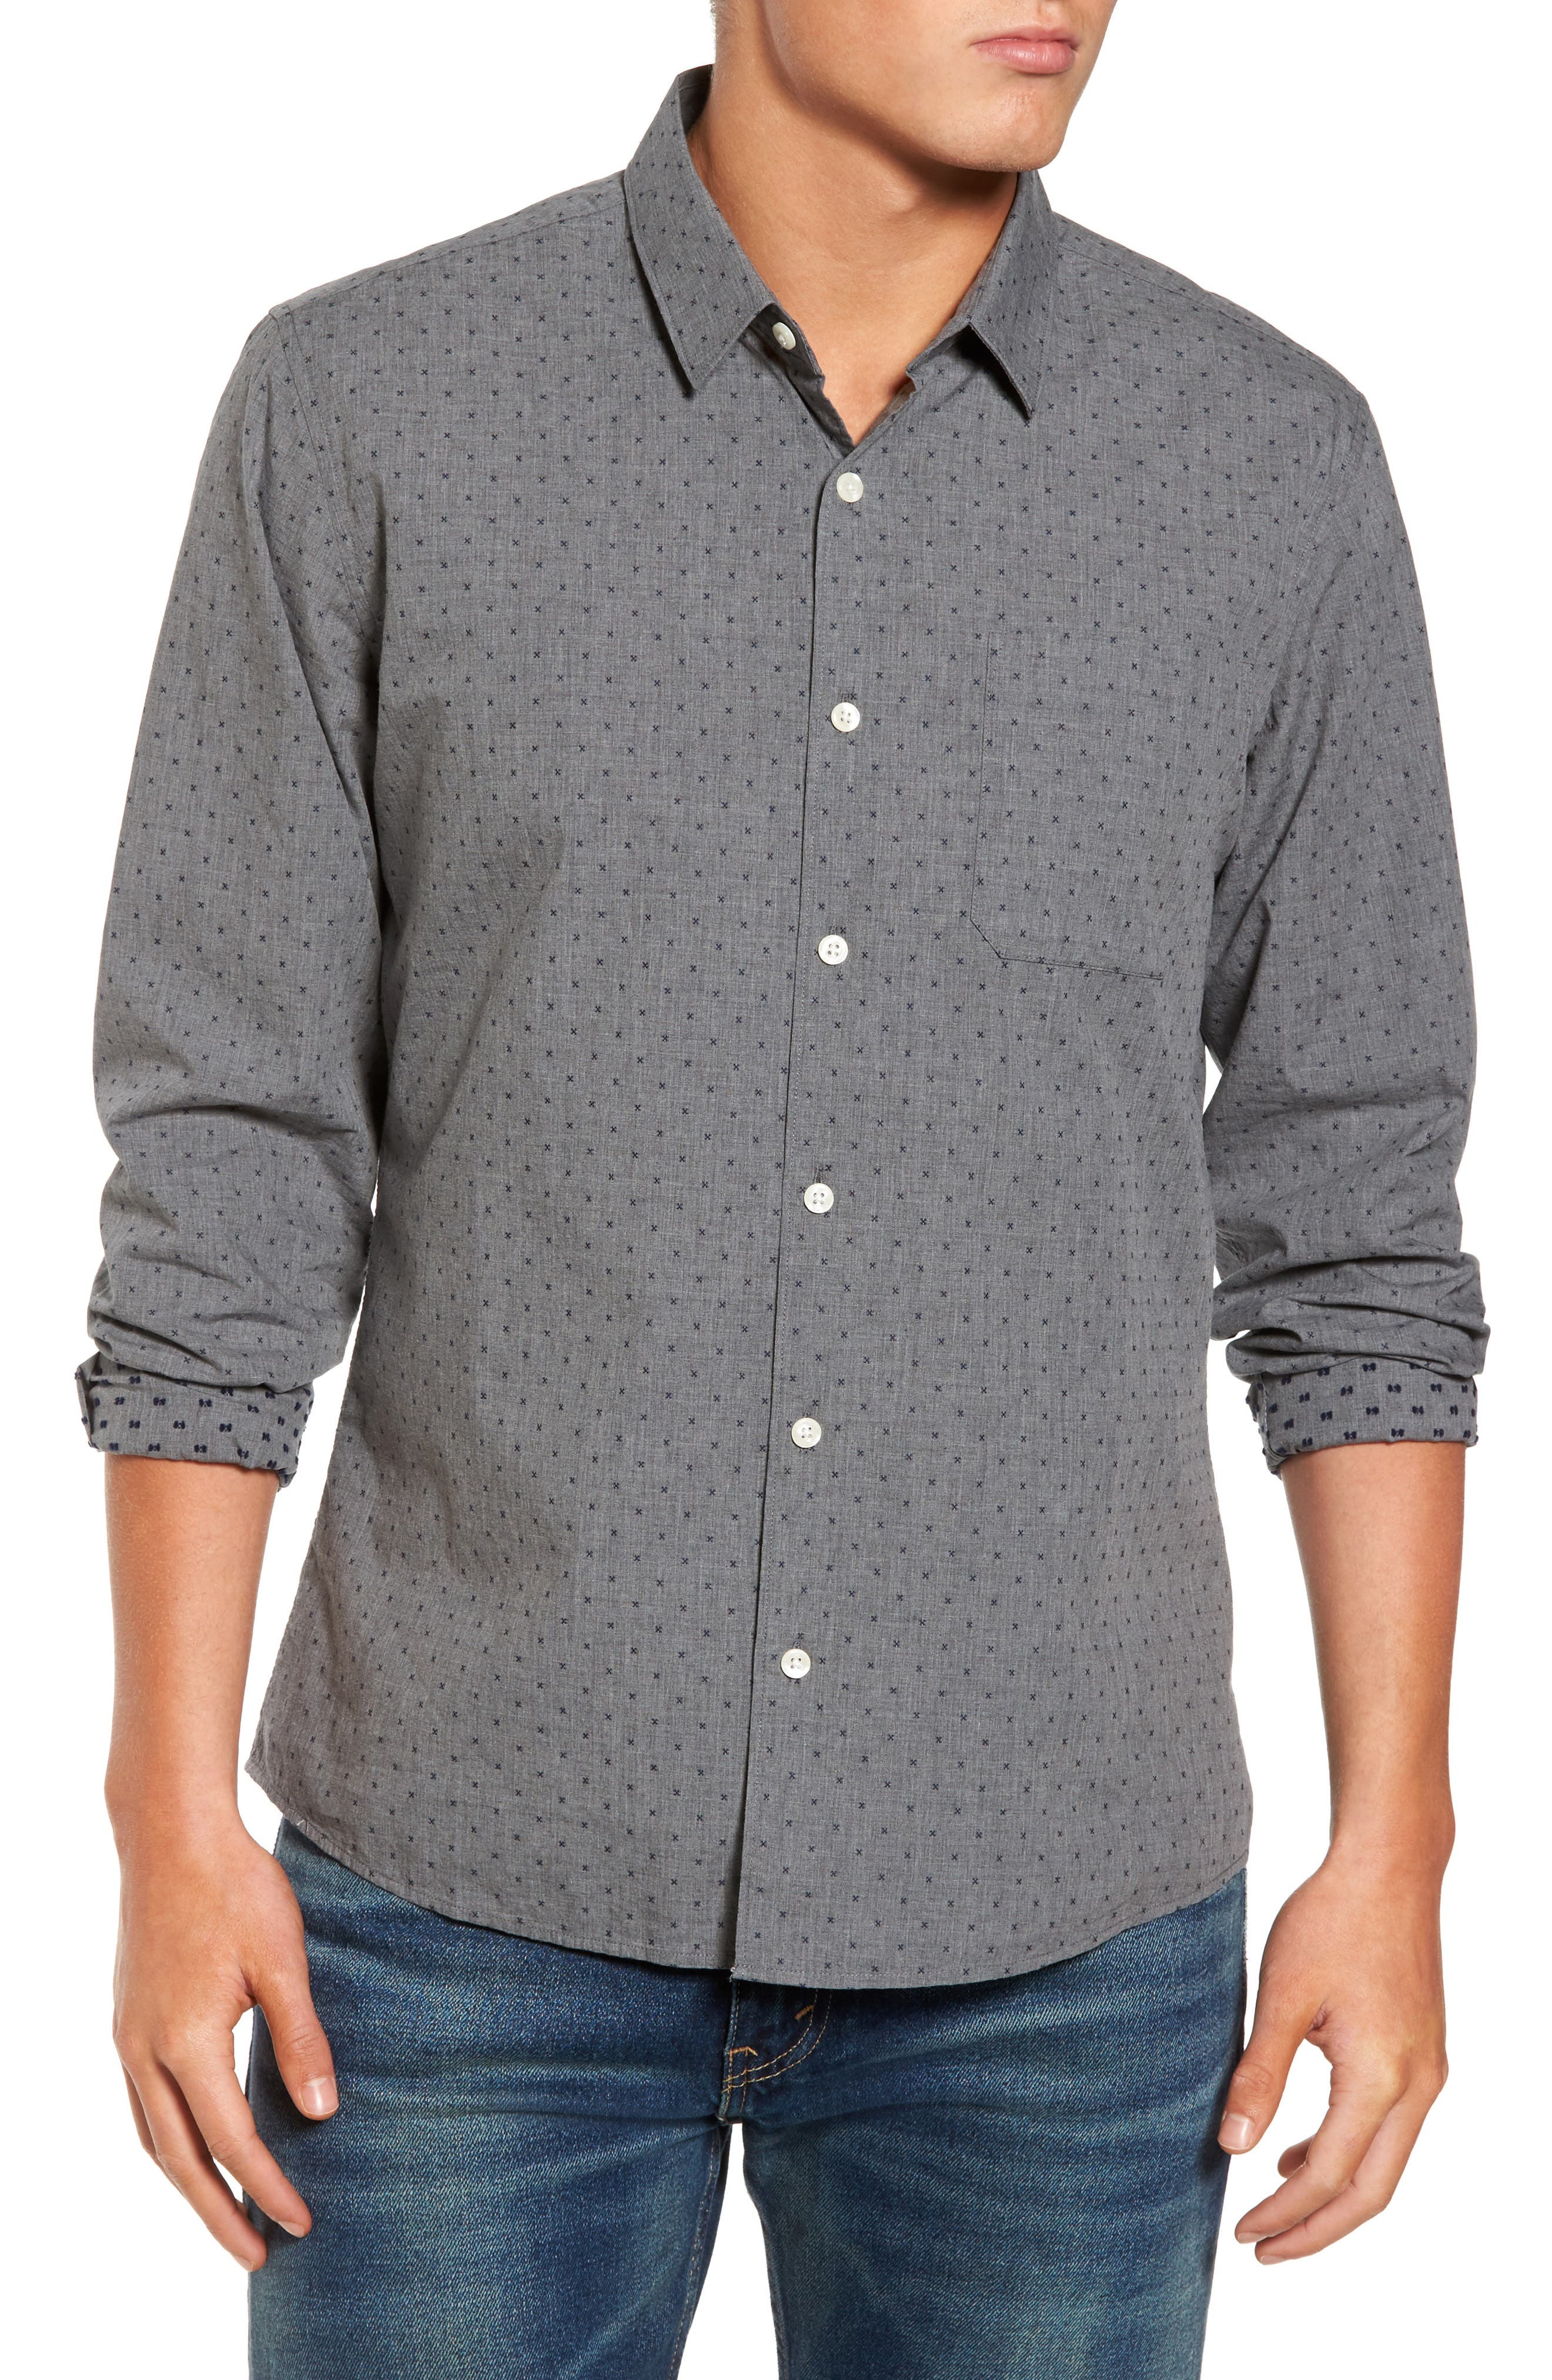 Steel Sky Woven Shirt,                         Main,                         color, 410